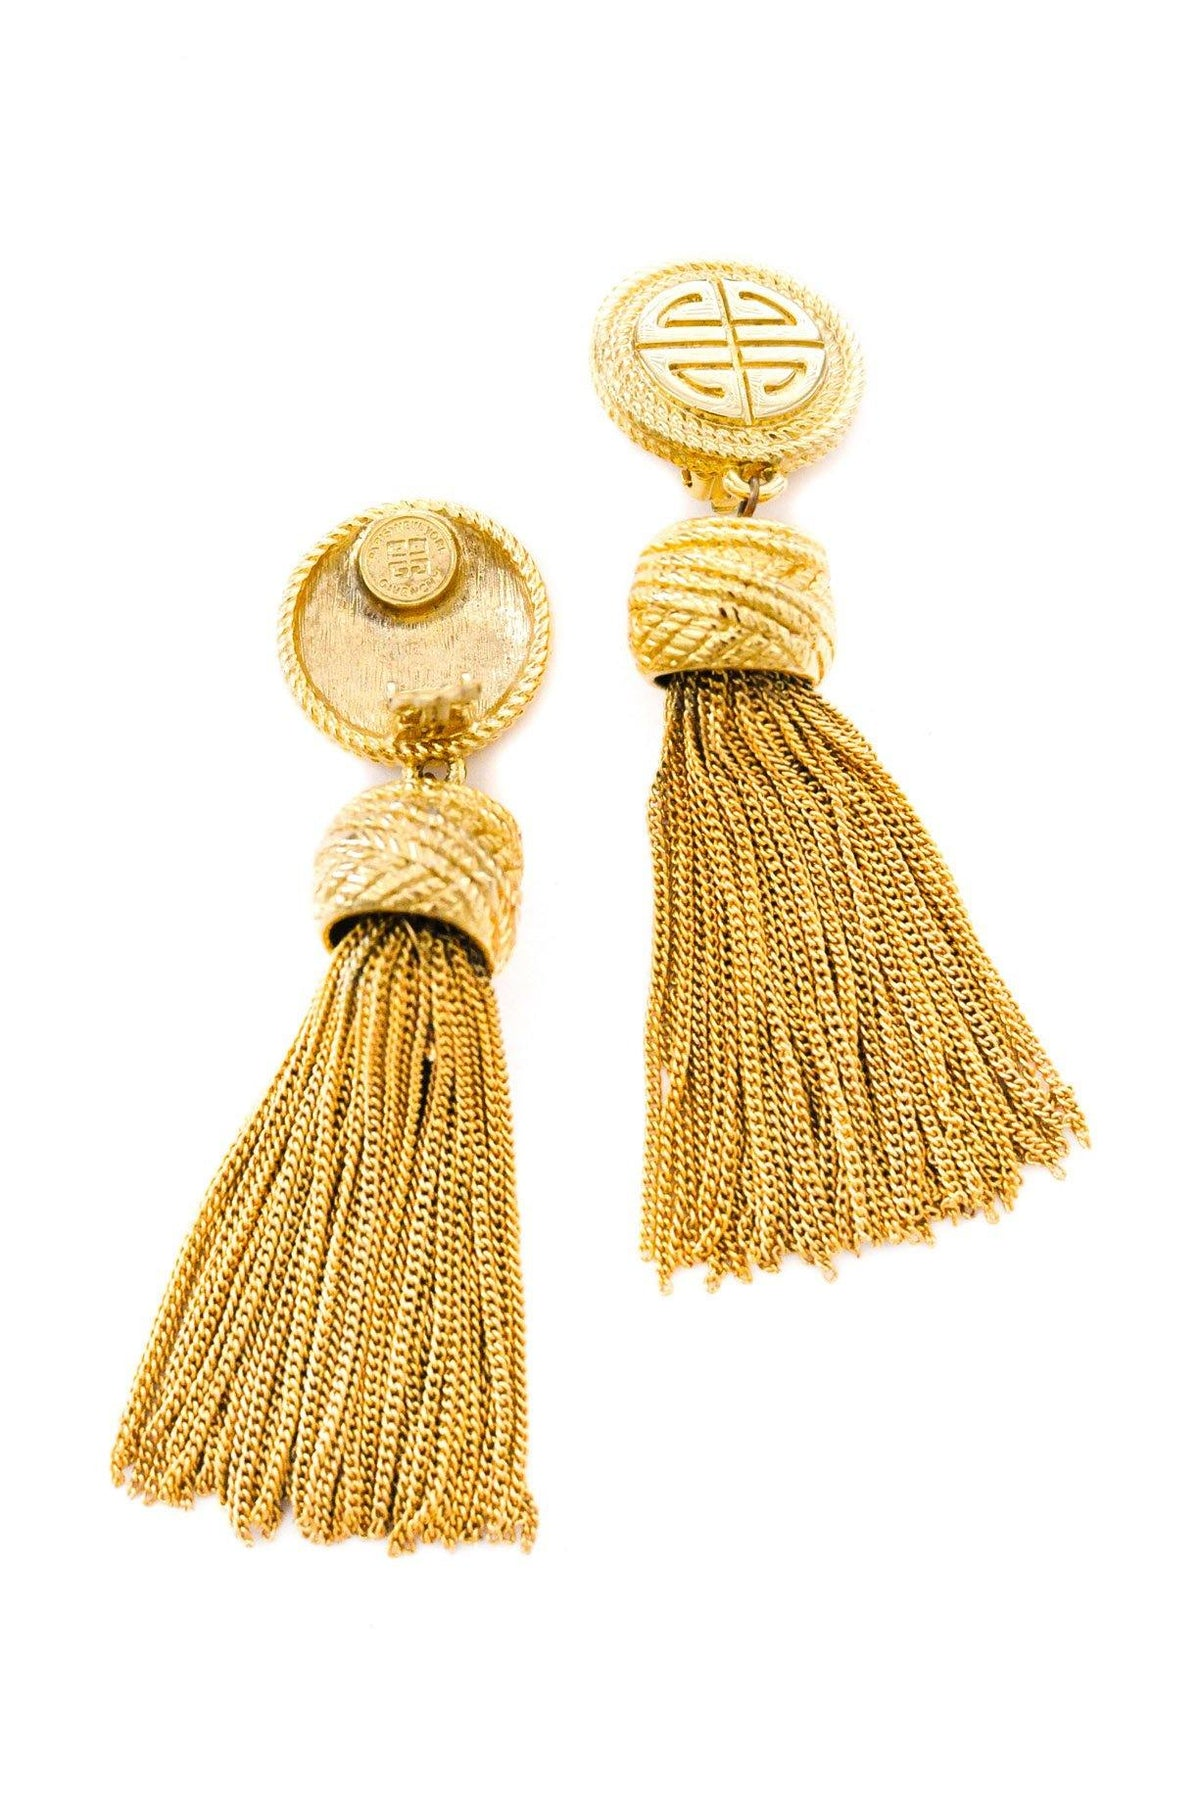 Vintage Givenchy statement Tassel Earrings from Sweet & Spark.